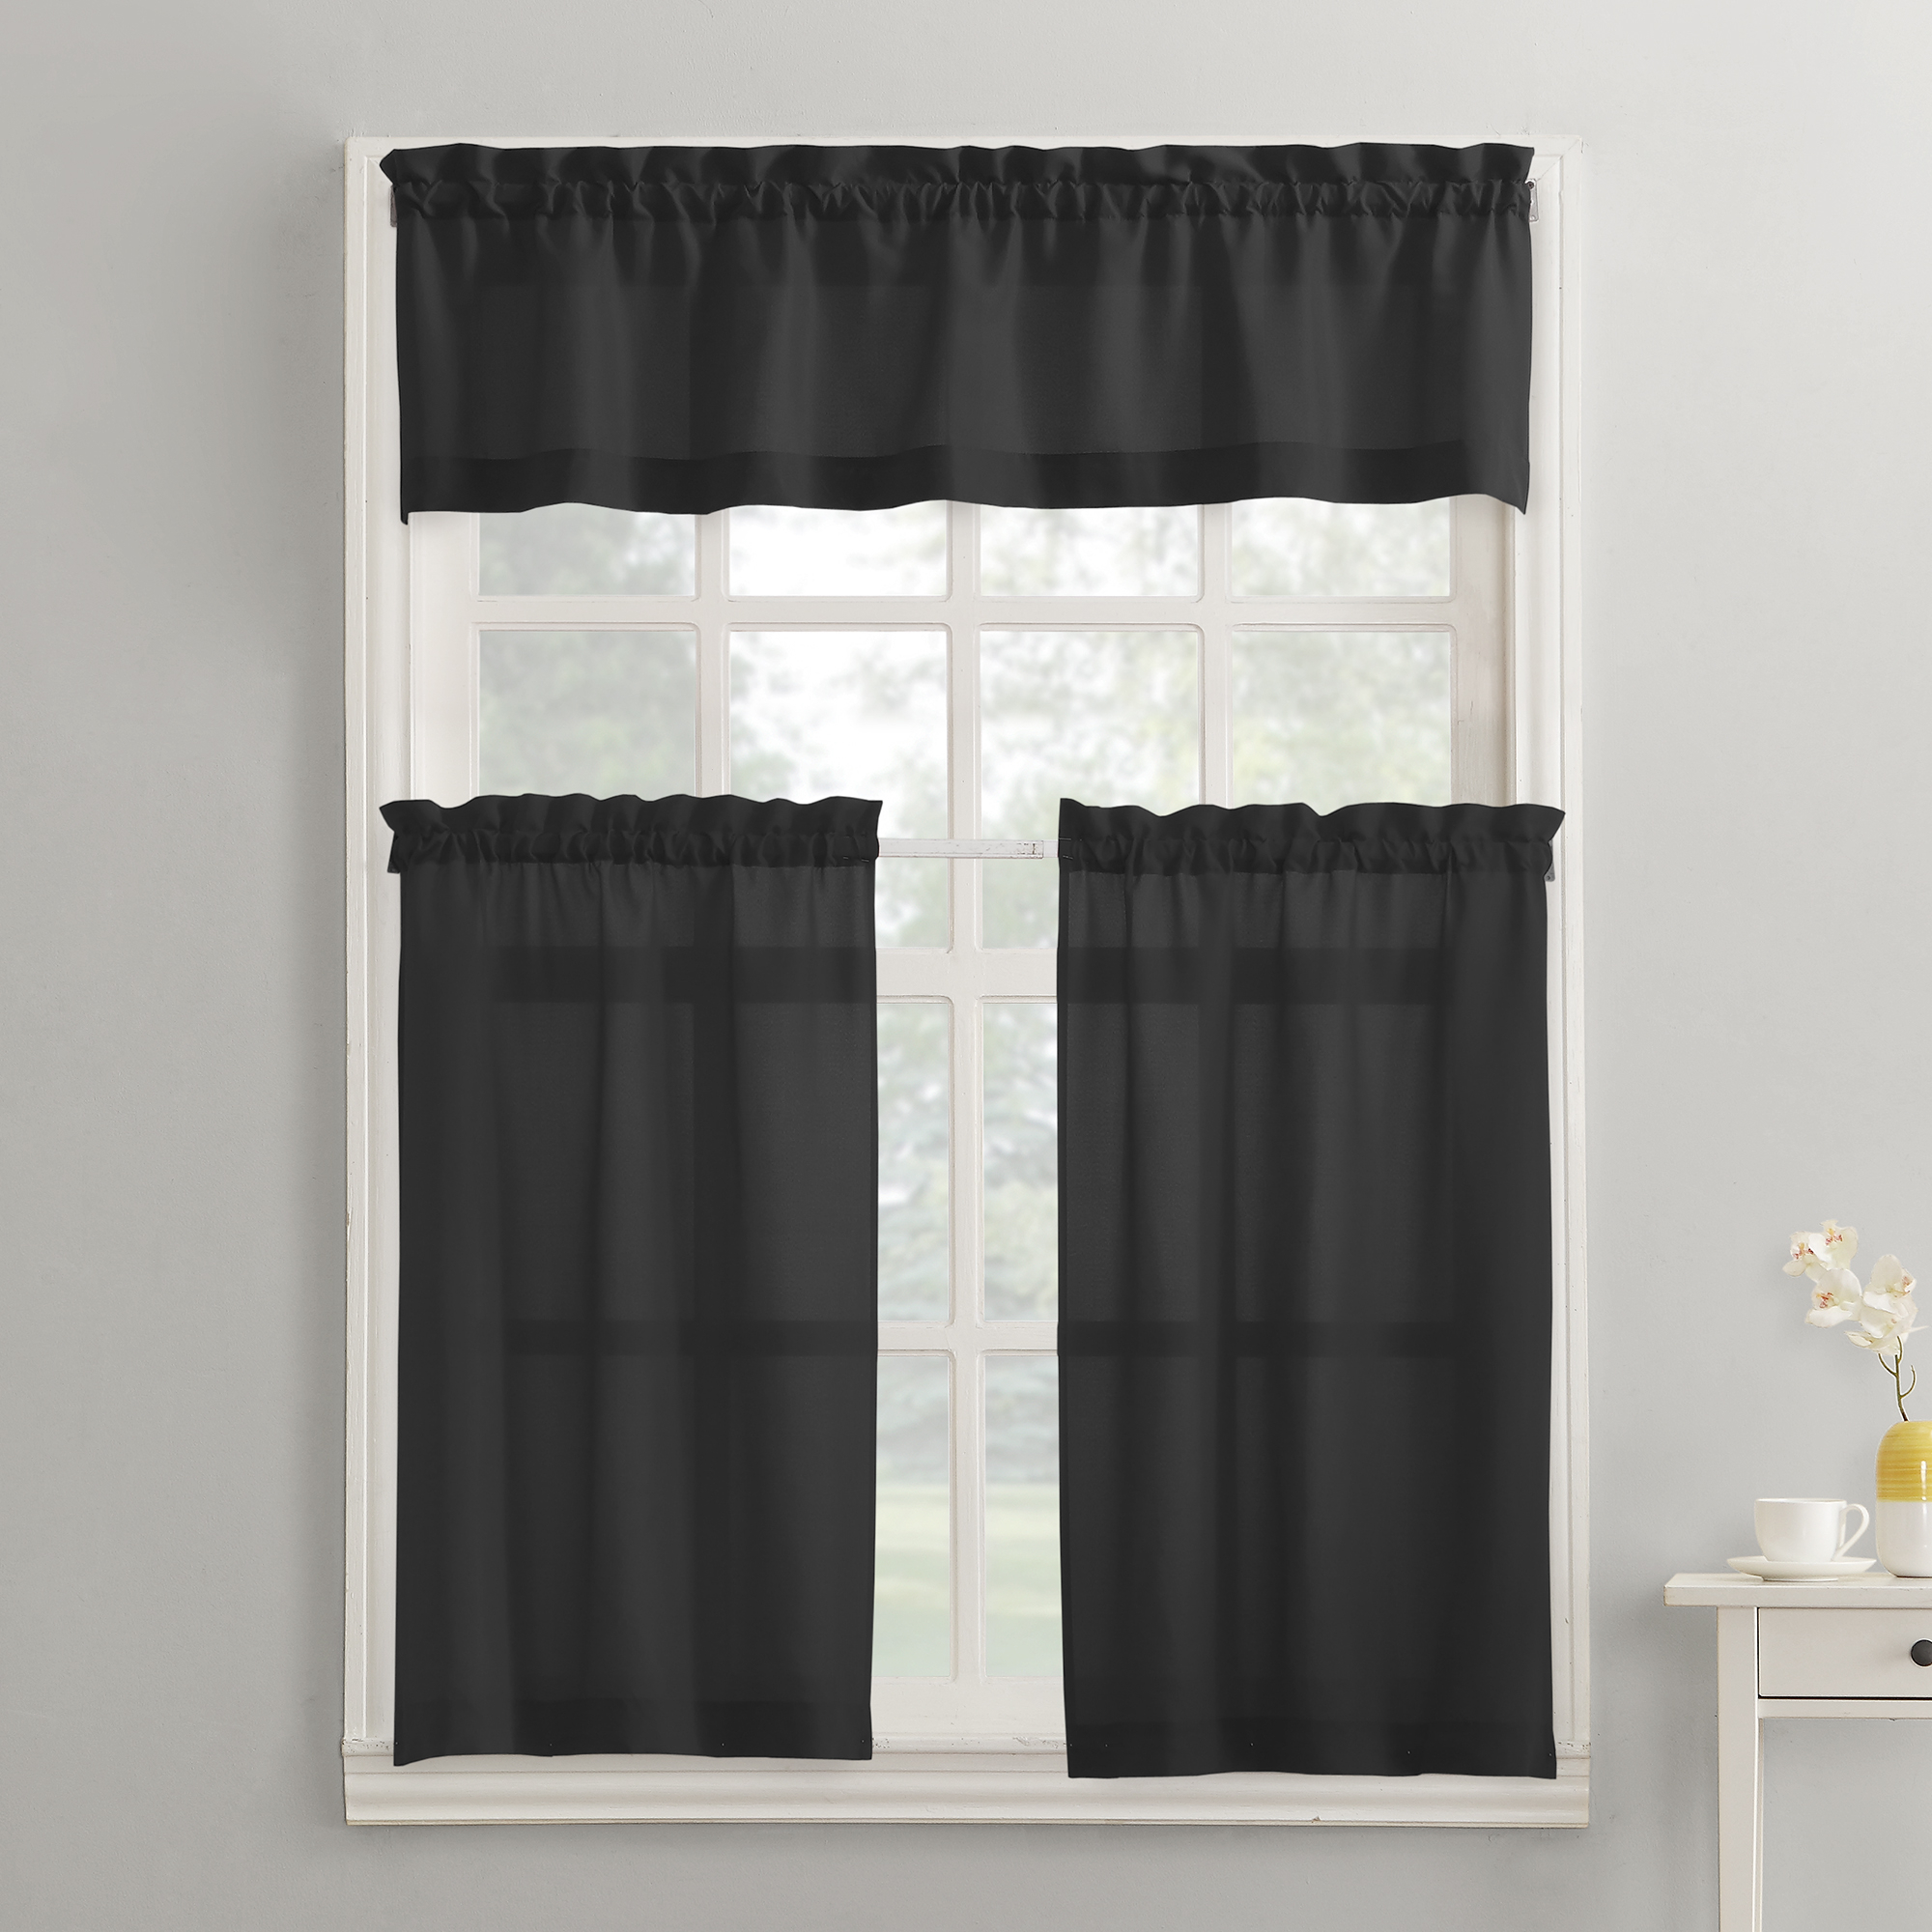 Mainstays Solid 3 Piece Kitchen Curtain Tier And Valance Set For Scroll Leaf 3 Piece Curtain Tier And Valance Sets (View 4 of 20)